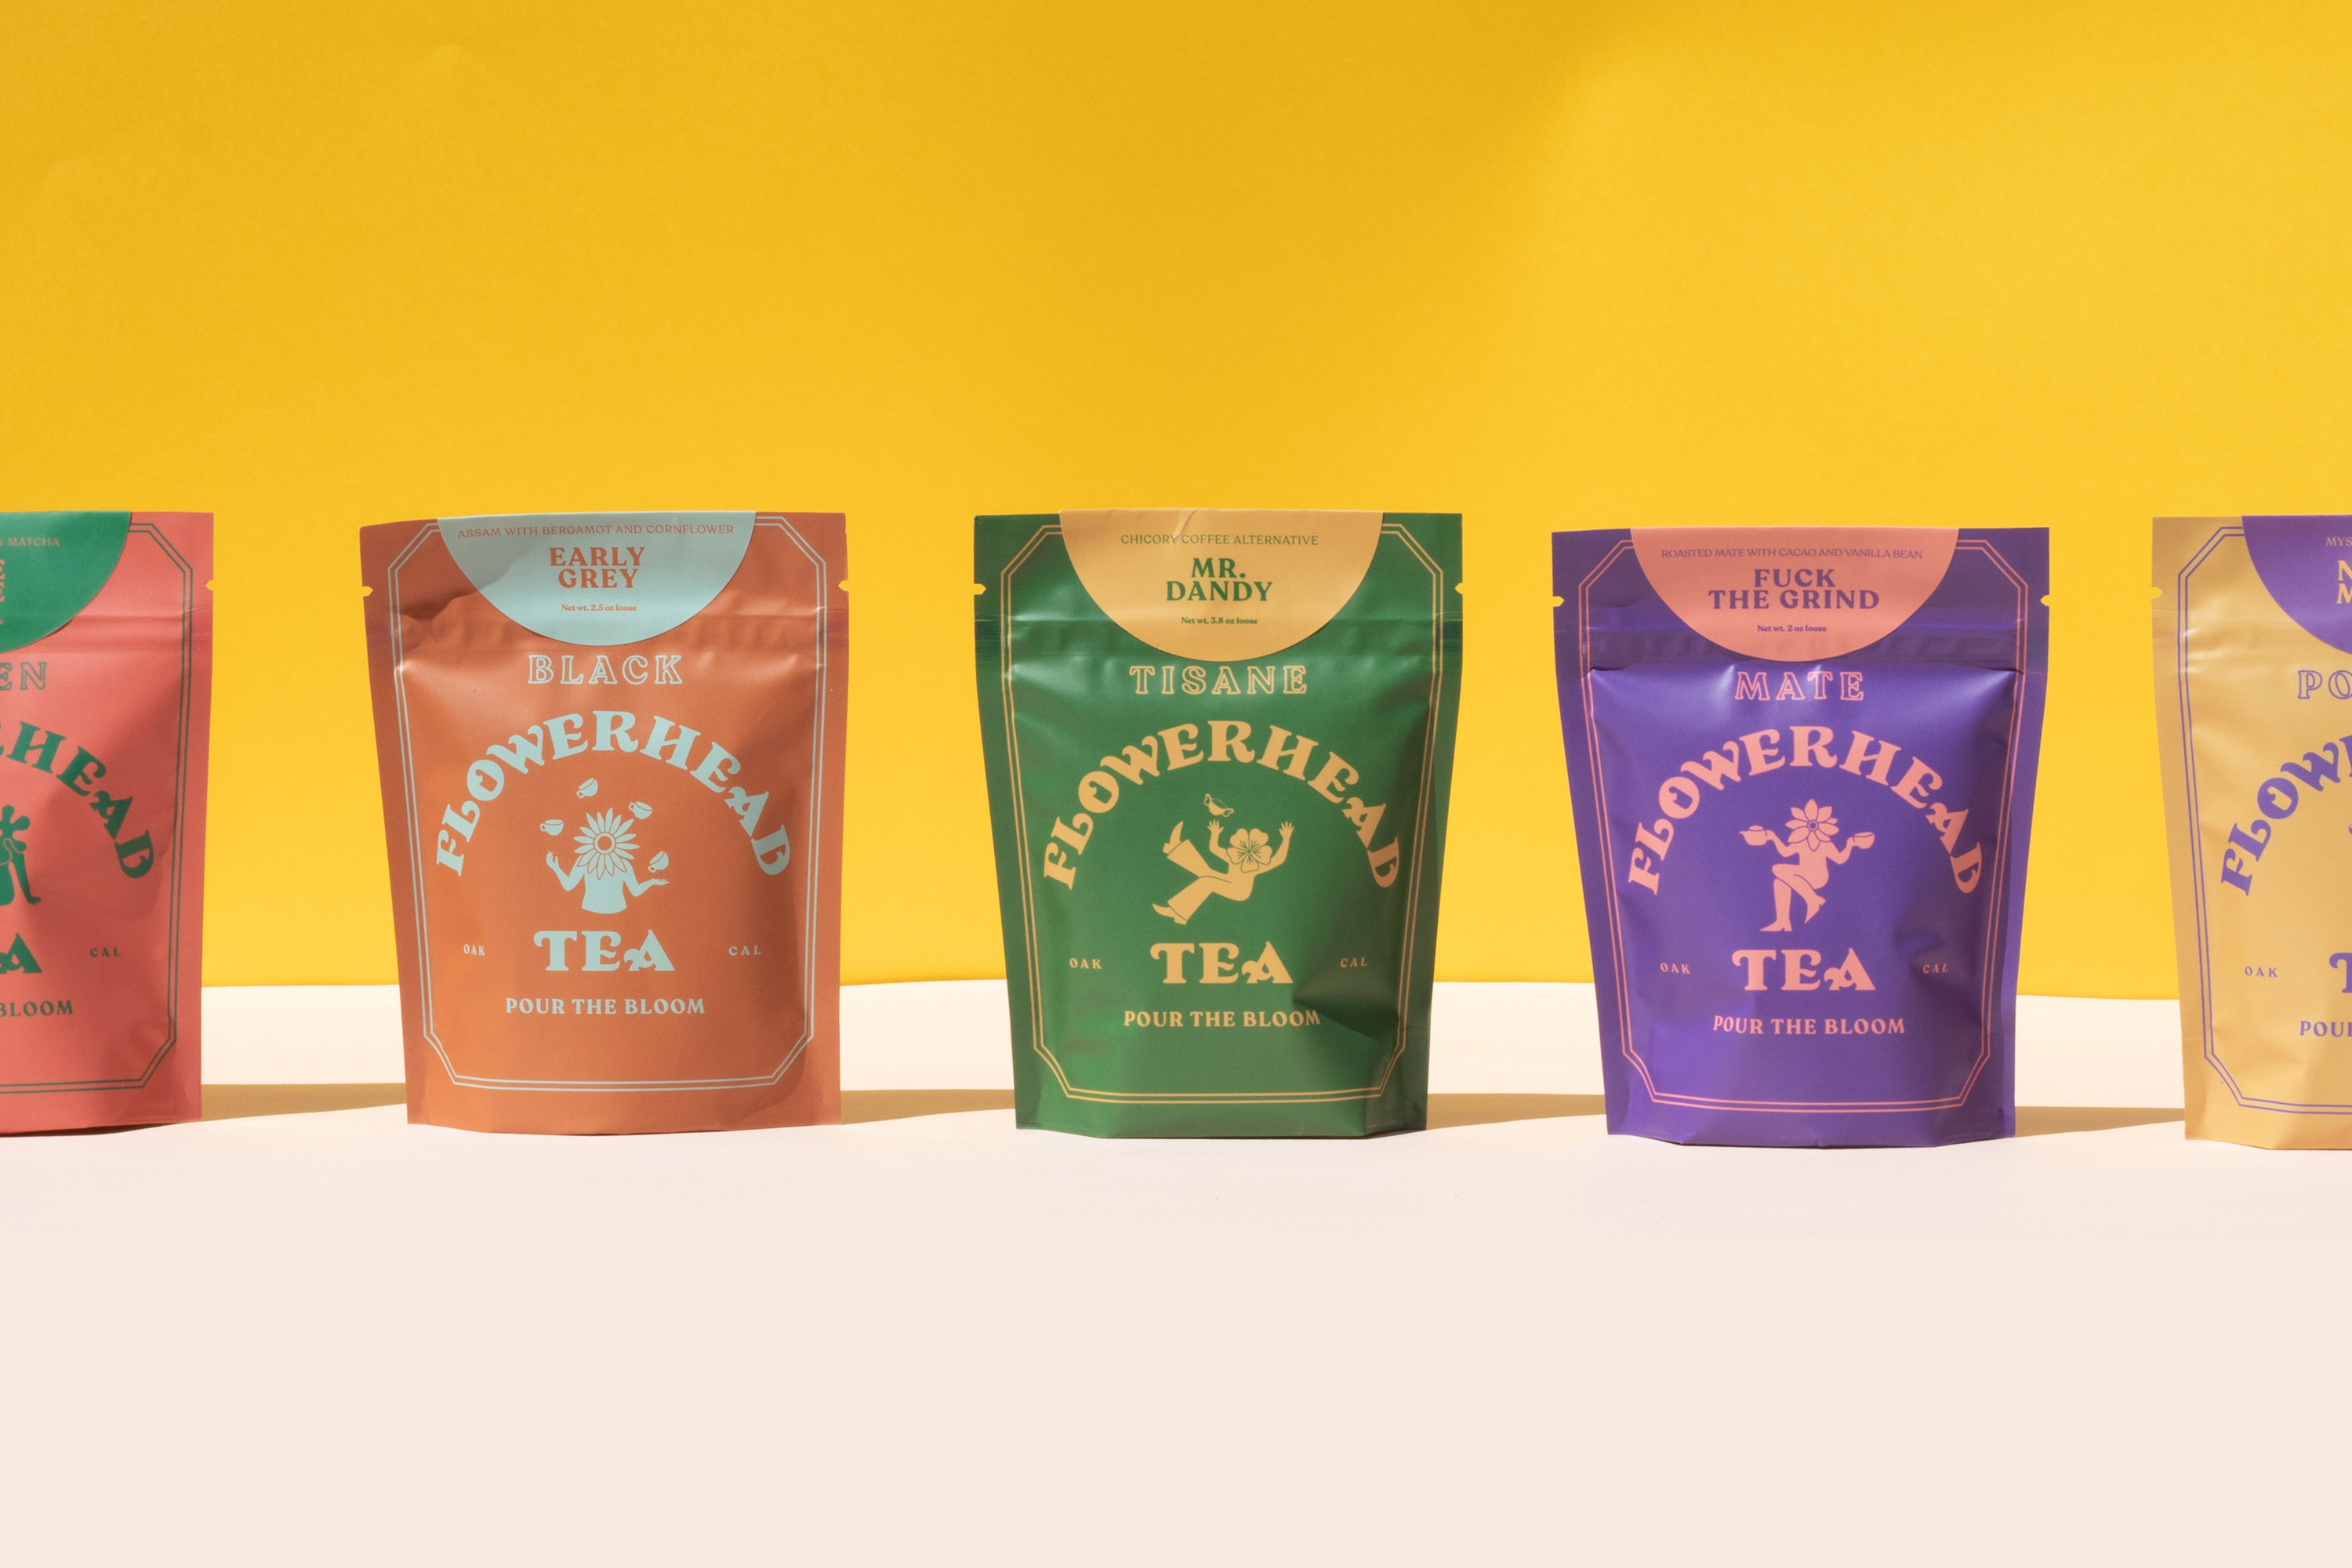 Tea Time For A Very Merry Unbirthday: Toro Pinto Create Brand and Packaging Identity System for Flowerhead